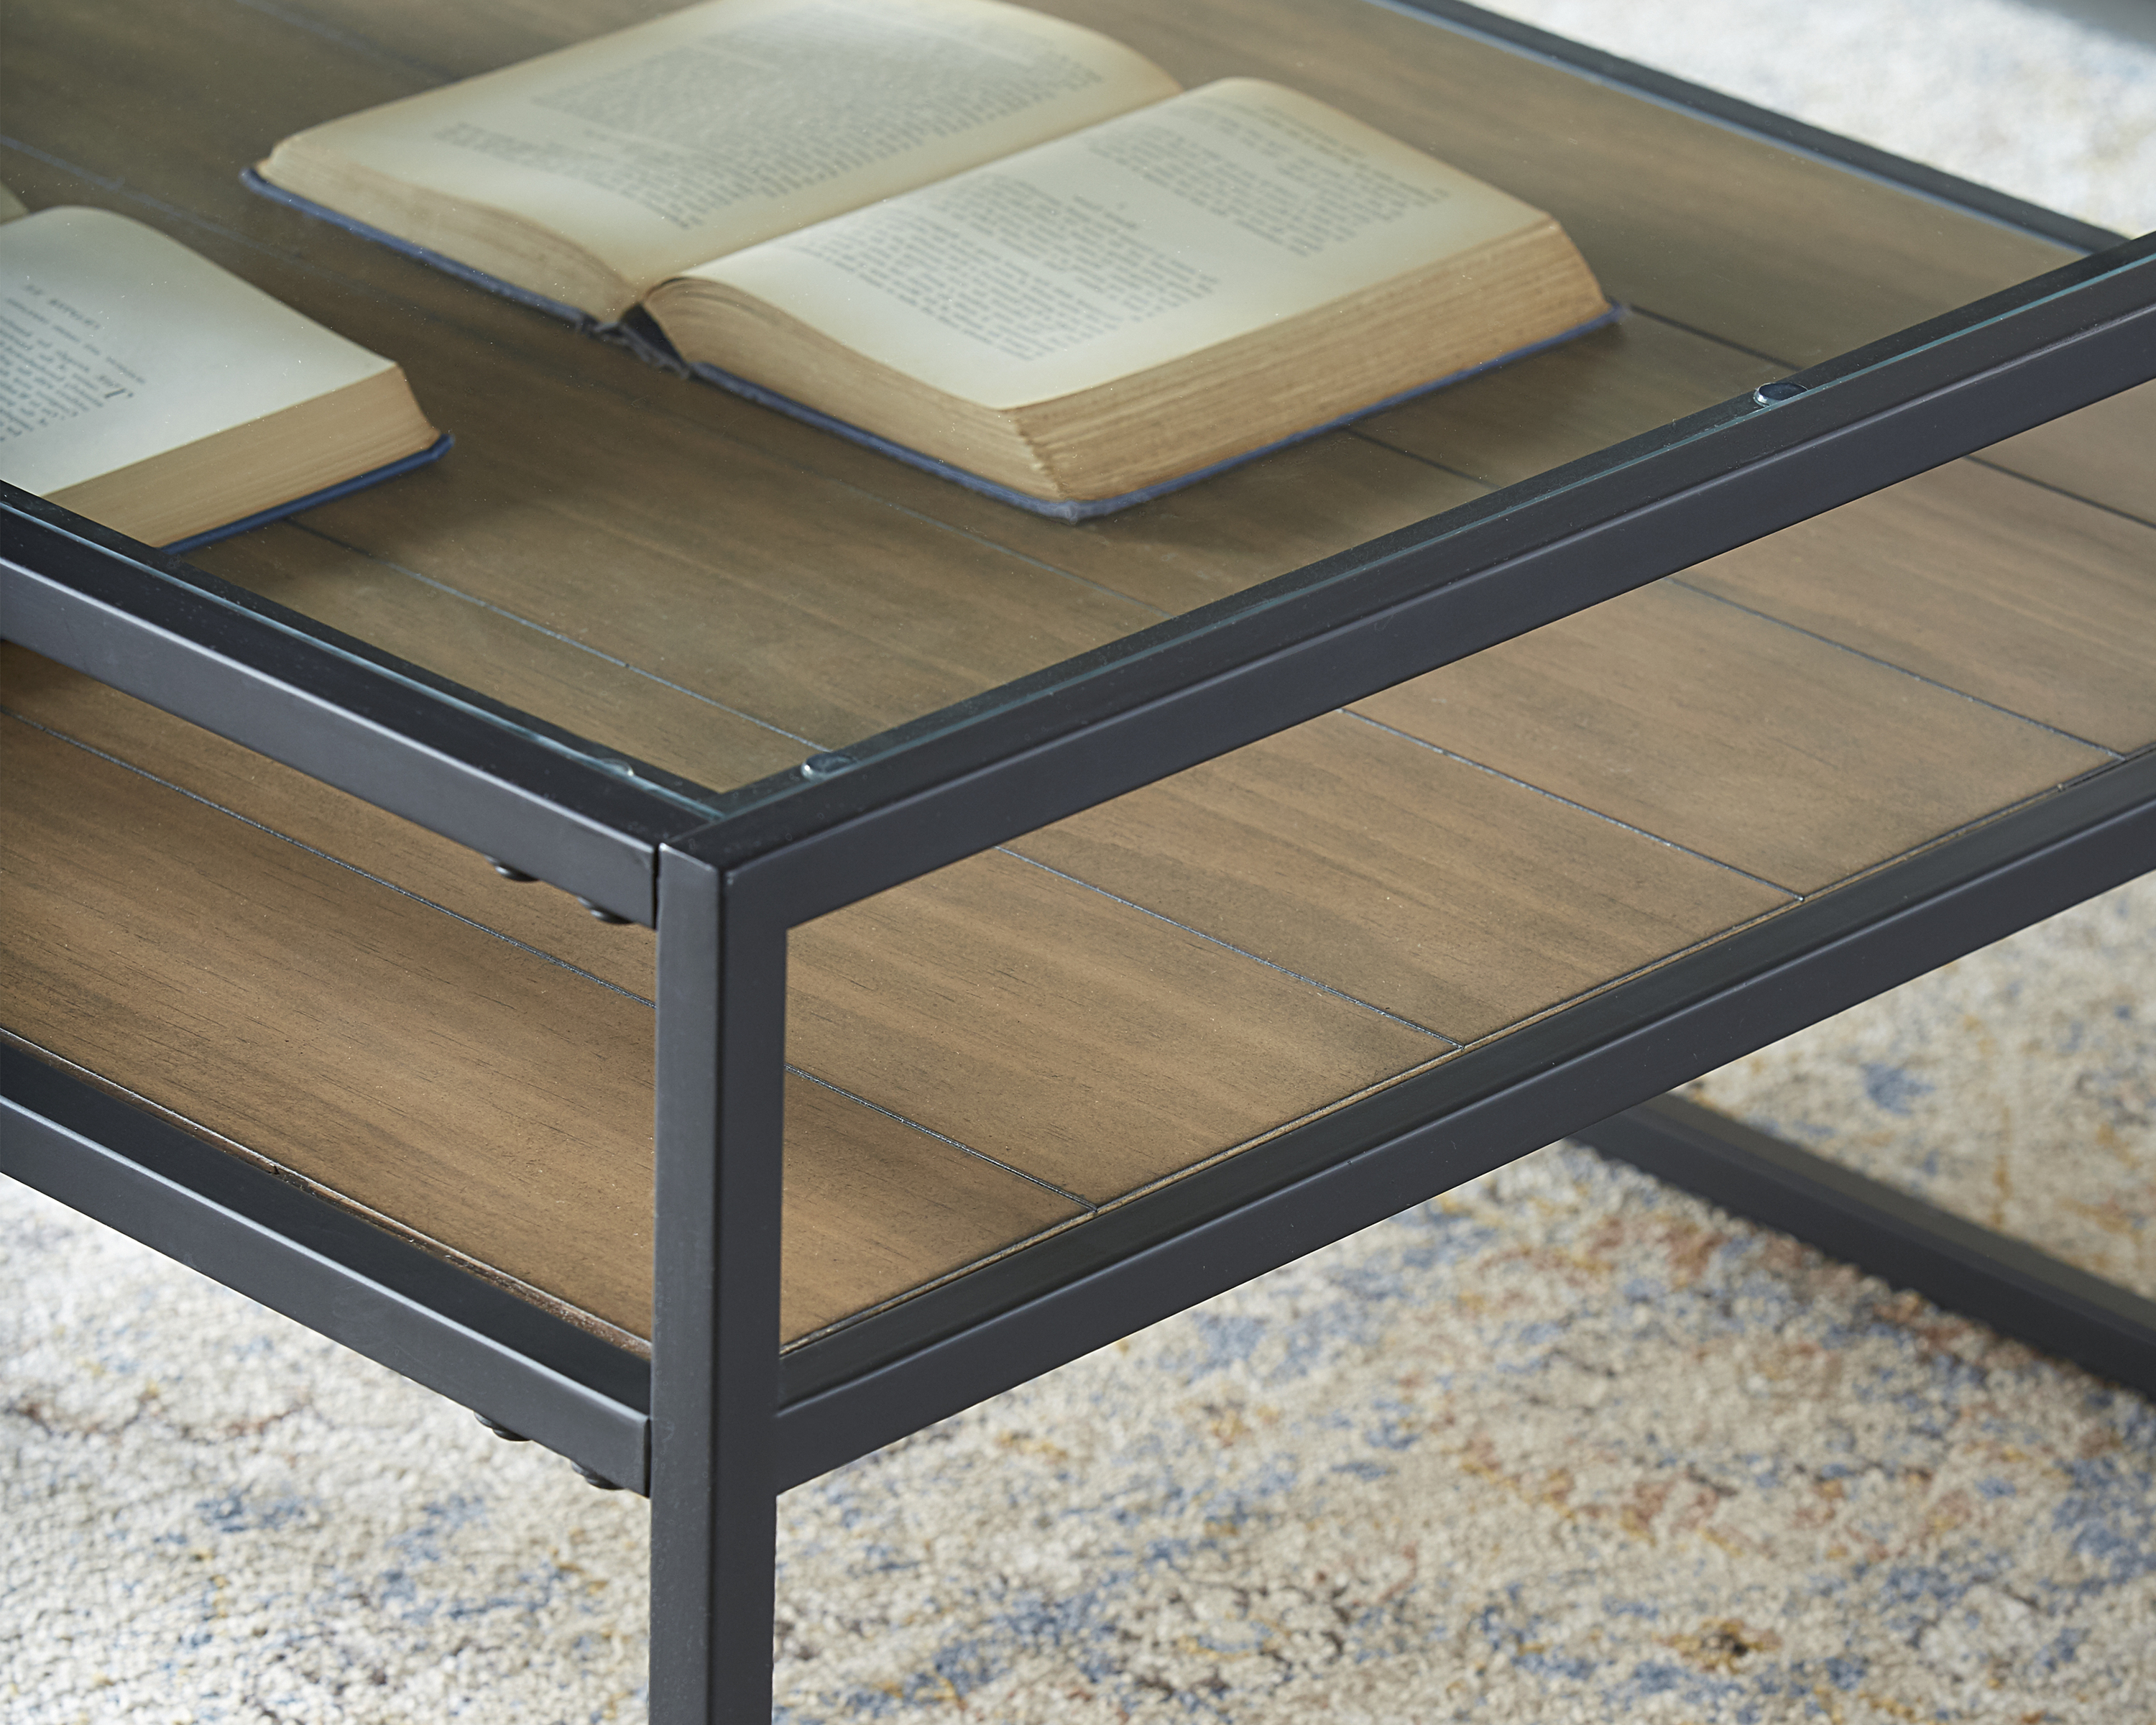 Magnolia Home Showcase Cocktail Tables Within Most Recent Showcase Coffee Table – Magnolia Home (View 7 of 20)